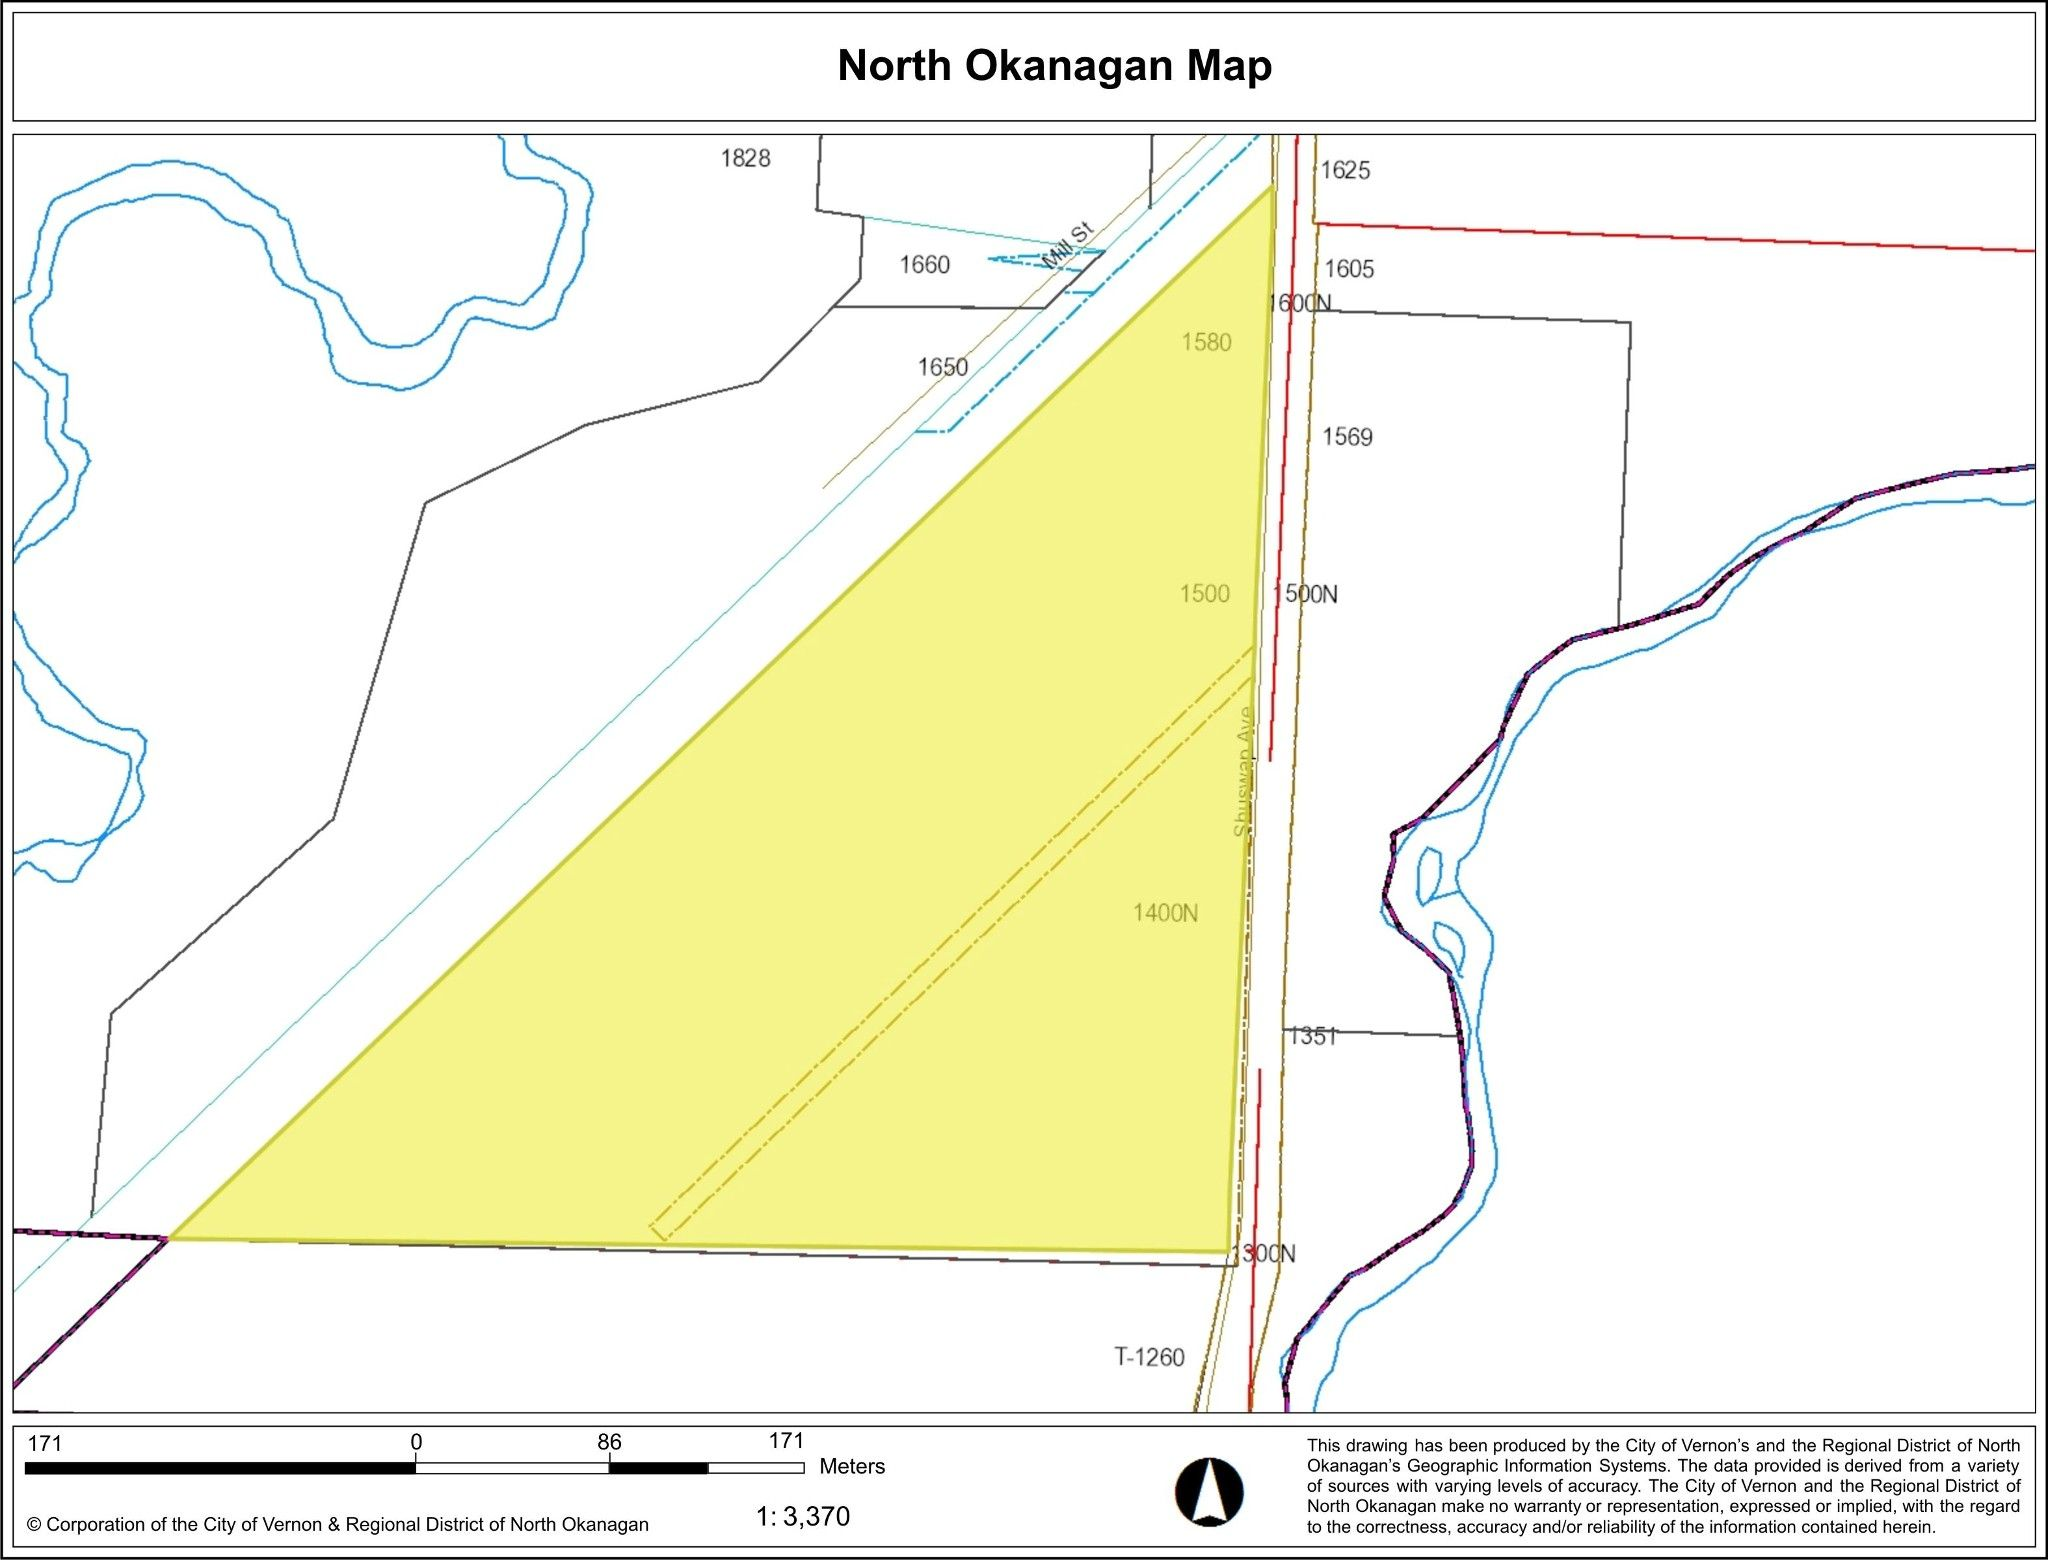 Main Photo: 1580 Shuswap Avenue in Lumby: Lumby Valley Vacant Land for sale (North Okanagan)  : MLS®# 10042447